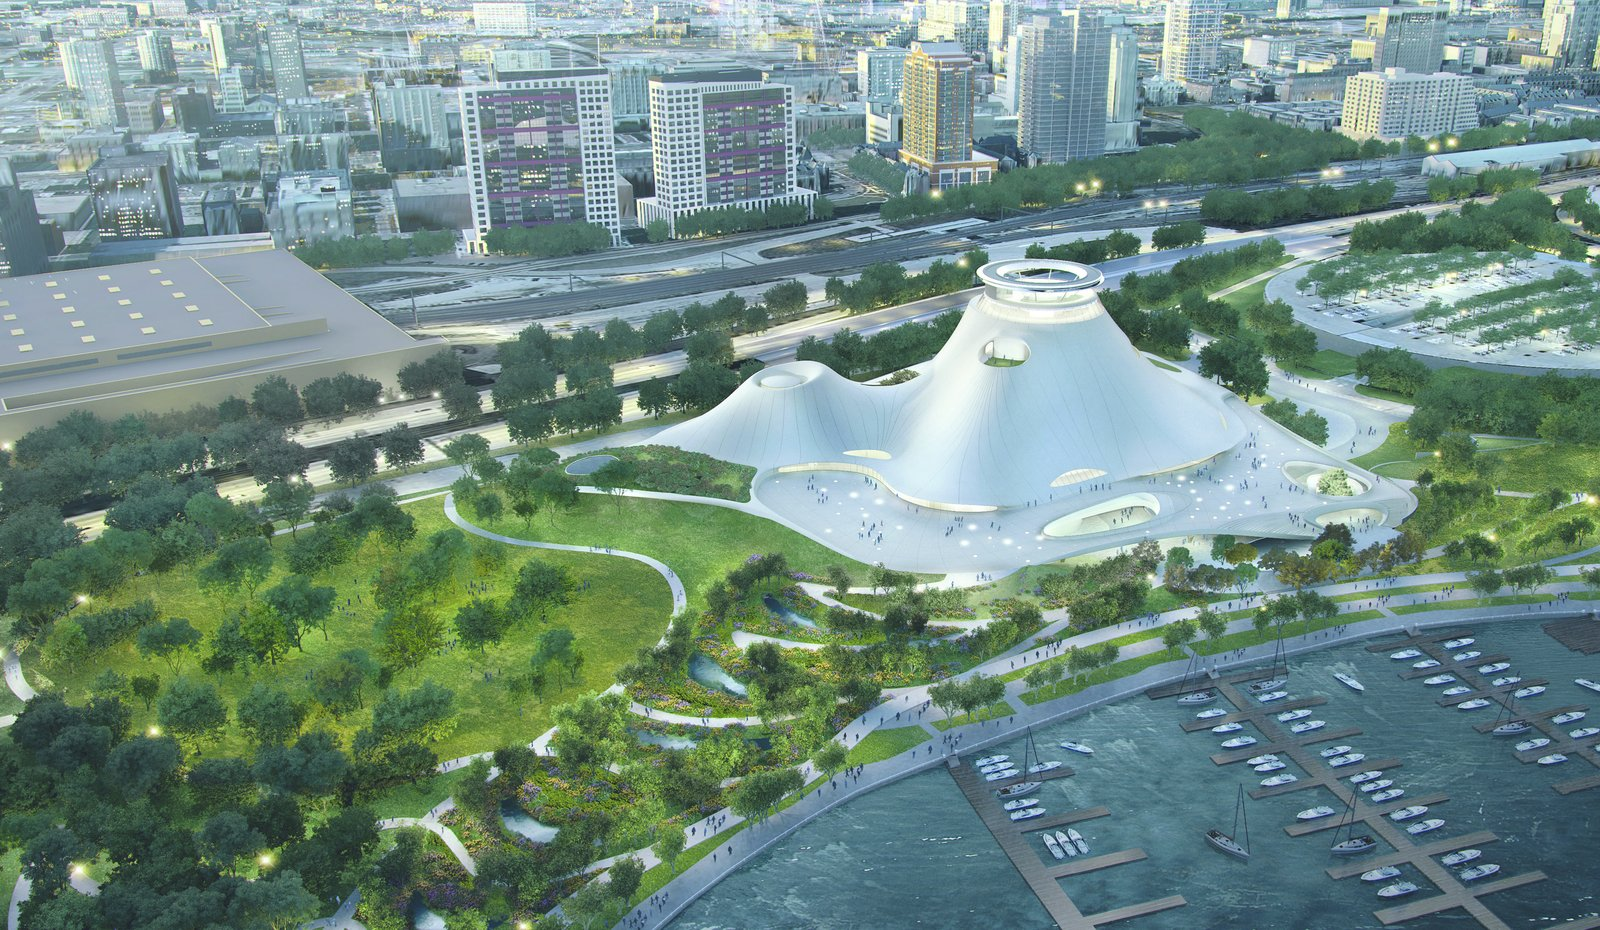 Set not far from Chicago's landmark skyscrapers, MAD Architects' Lucas Museum of Narrative Art, scheduled for completion in 2019, makes a statement with its organic horizontality. The museum experience begins with the surrounding park, which flows into a hardscape plaza from which the structure seems to emerge. At its top, an observation platform will offer 360-degree views of the city.  Picture courtesy of MAD Architects  Discover the Fantastical Future Vision of a Beijing Architect by Heather Corcoran